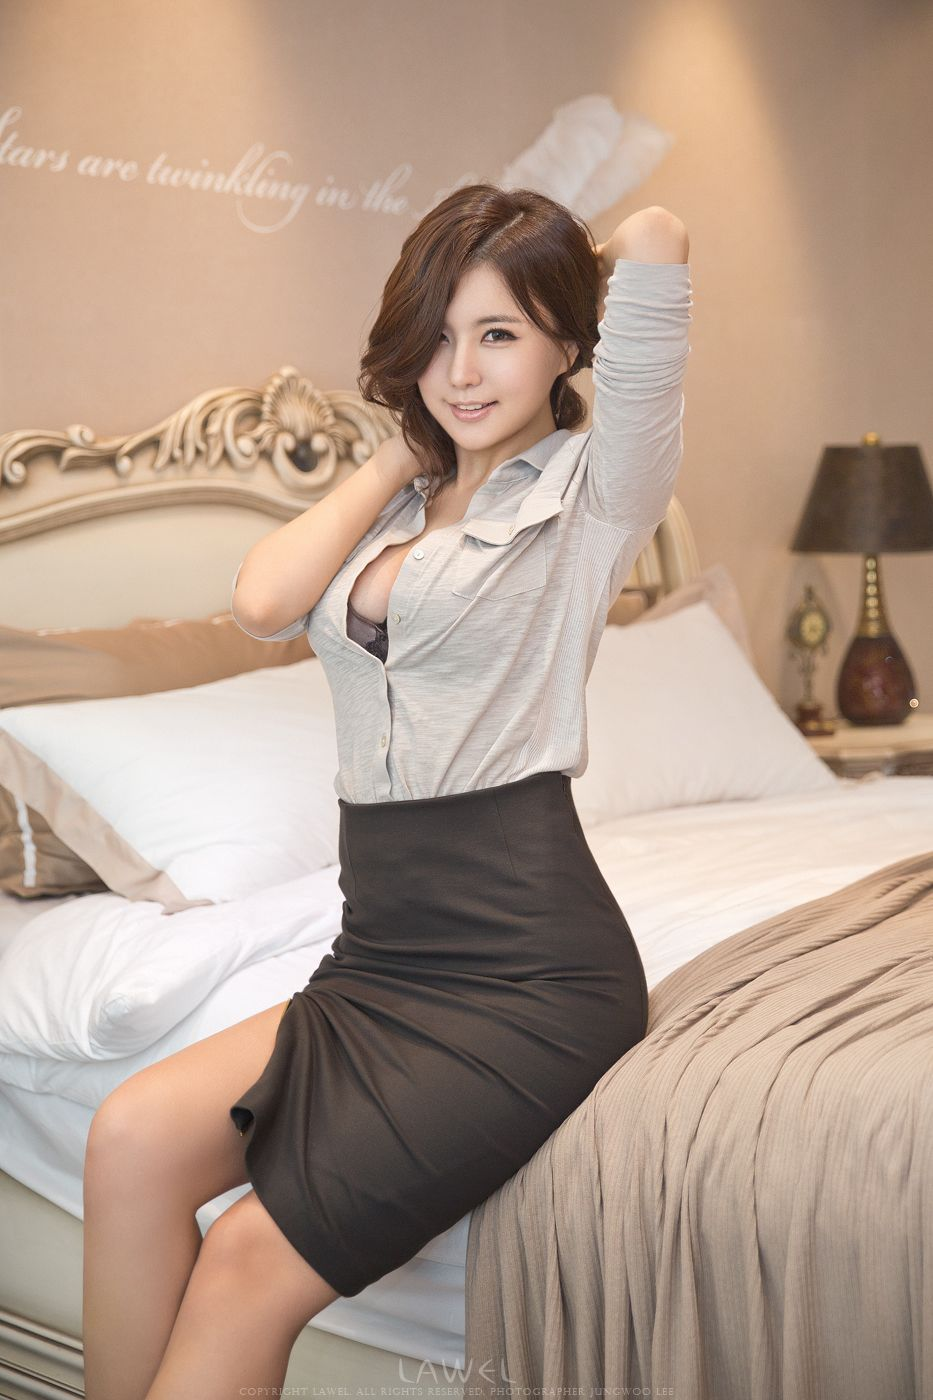 vera asian personals Pantyhose women dating 43,829 likes 2,132 talking about this ♥ join pantyhose dating at .